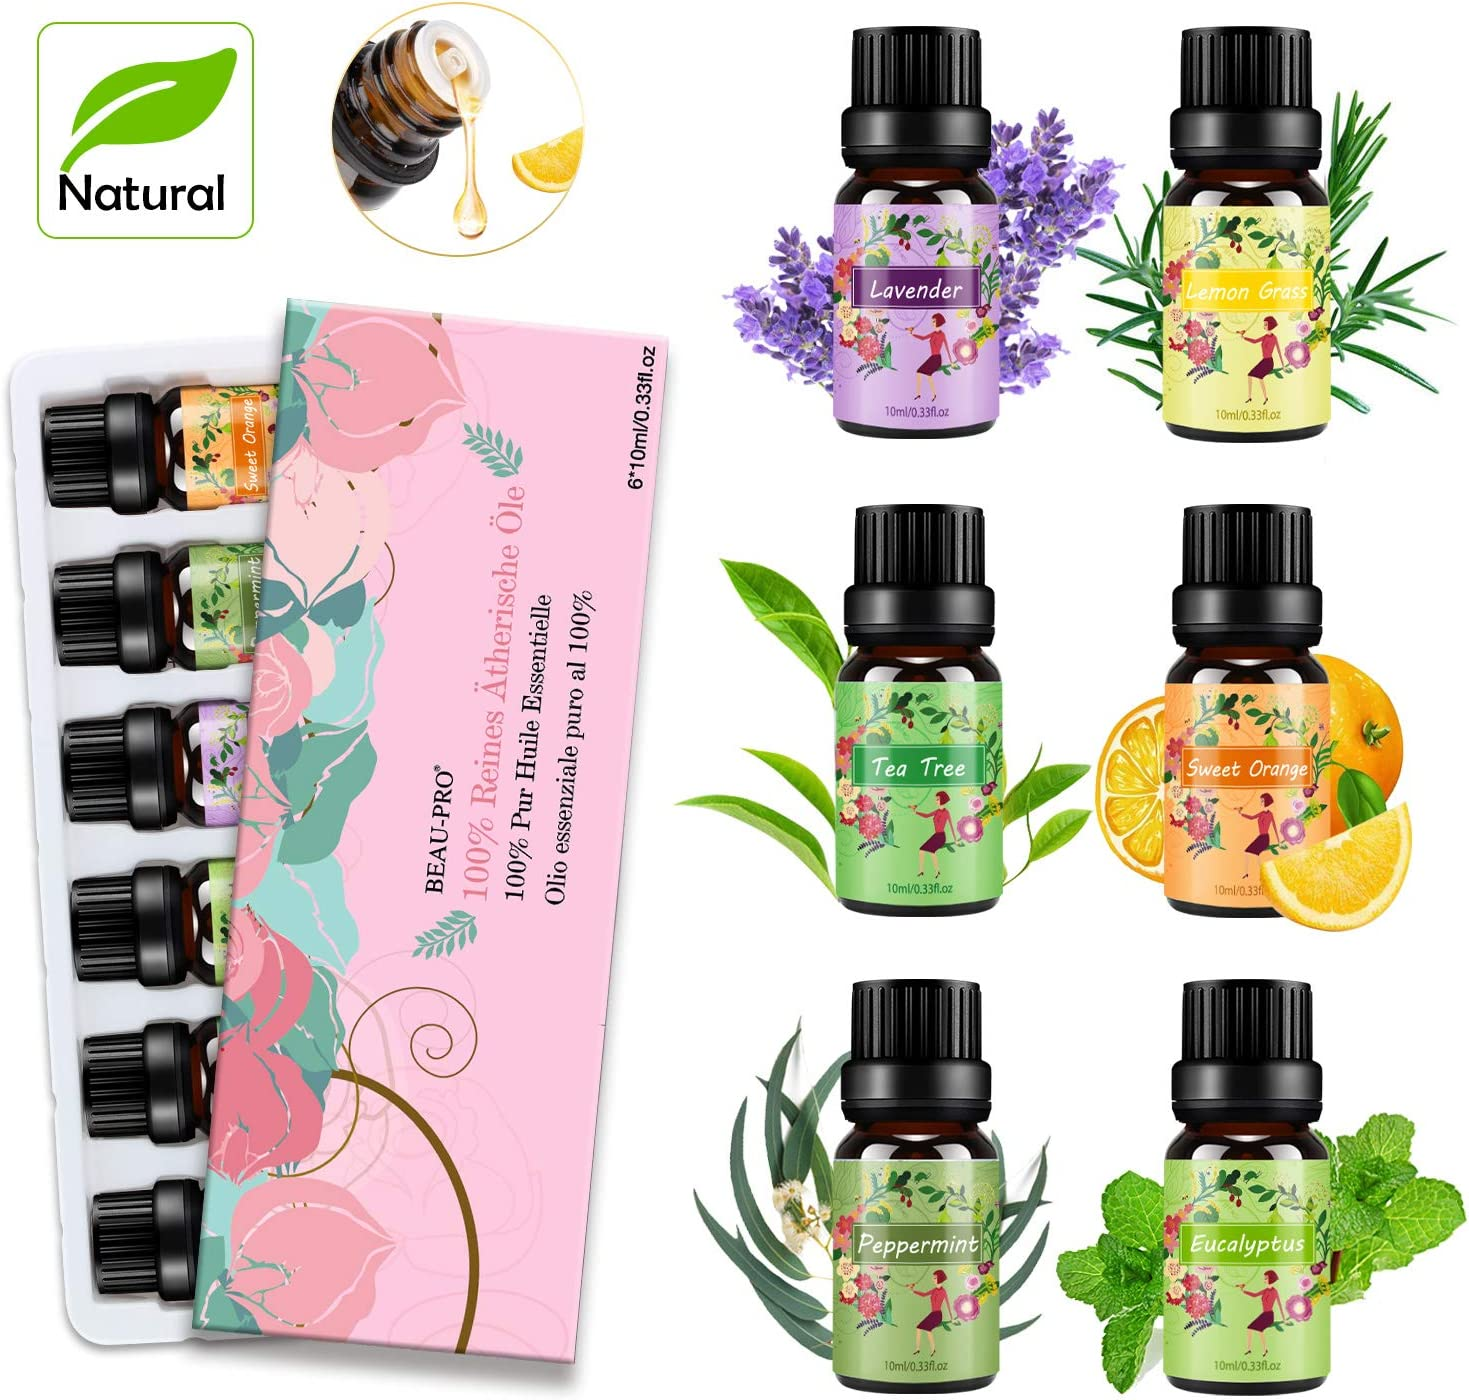 Essential Oils Set, 6 x 10ml Aromatherapy 100% Pure Aroma Fragrance Oils , Spa Diffuser Oils (Tea Tree Oil, Lavender Oil, Peppermint Oil, Eucalyptus Oil, Lemongrass Oil, Sweet Orange Oil)